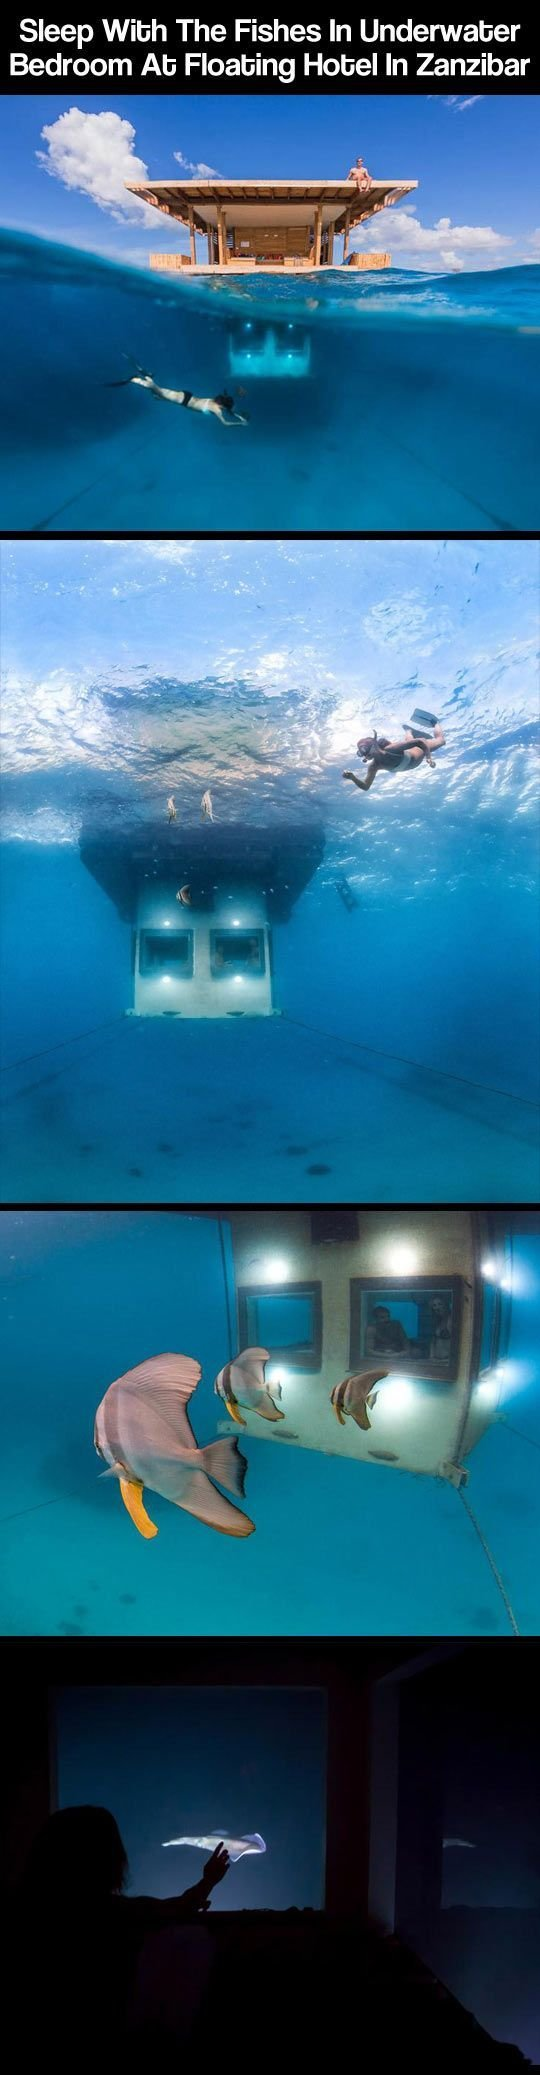 Best The 25 Best Underwater Hotel Ideas On Pinterest Fiji With Pictures